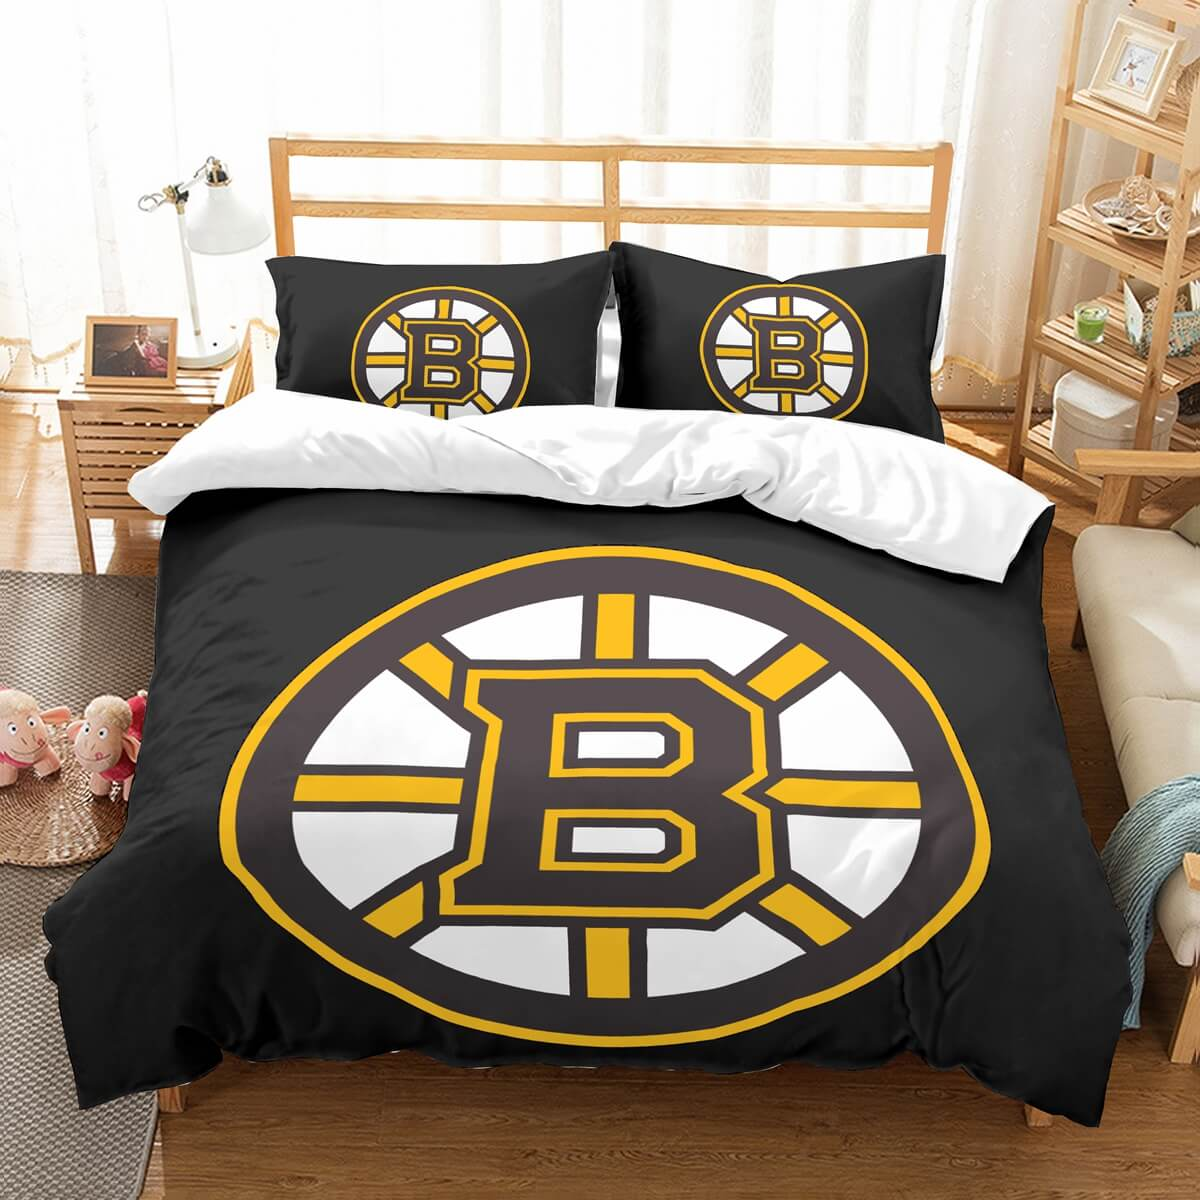 3D Customize Boston Bruins Bedding Set Duvet Cover Set Bedroom Set Bedlinen